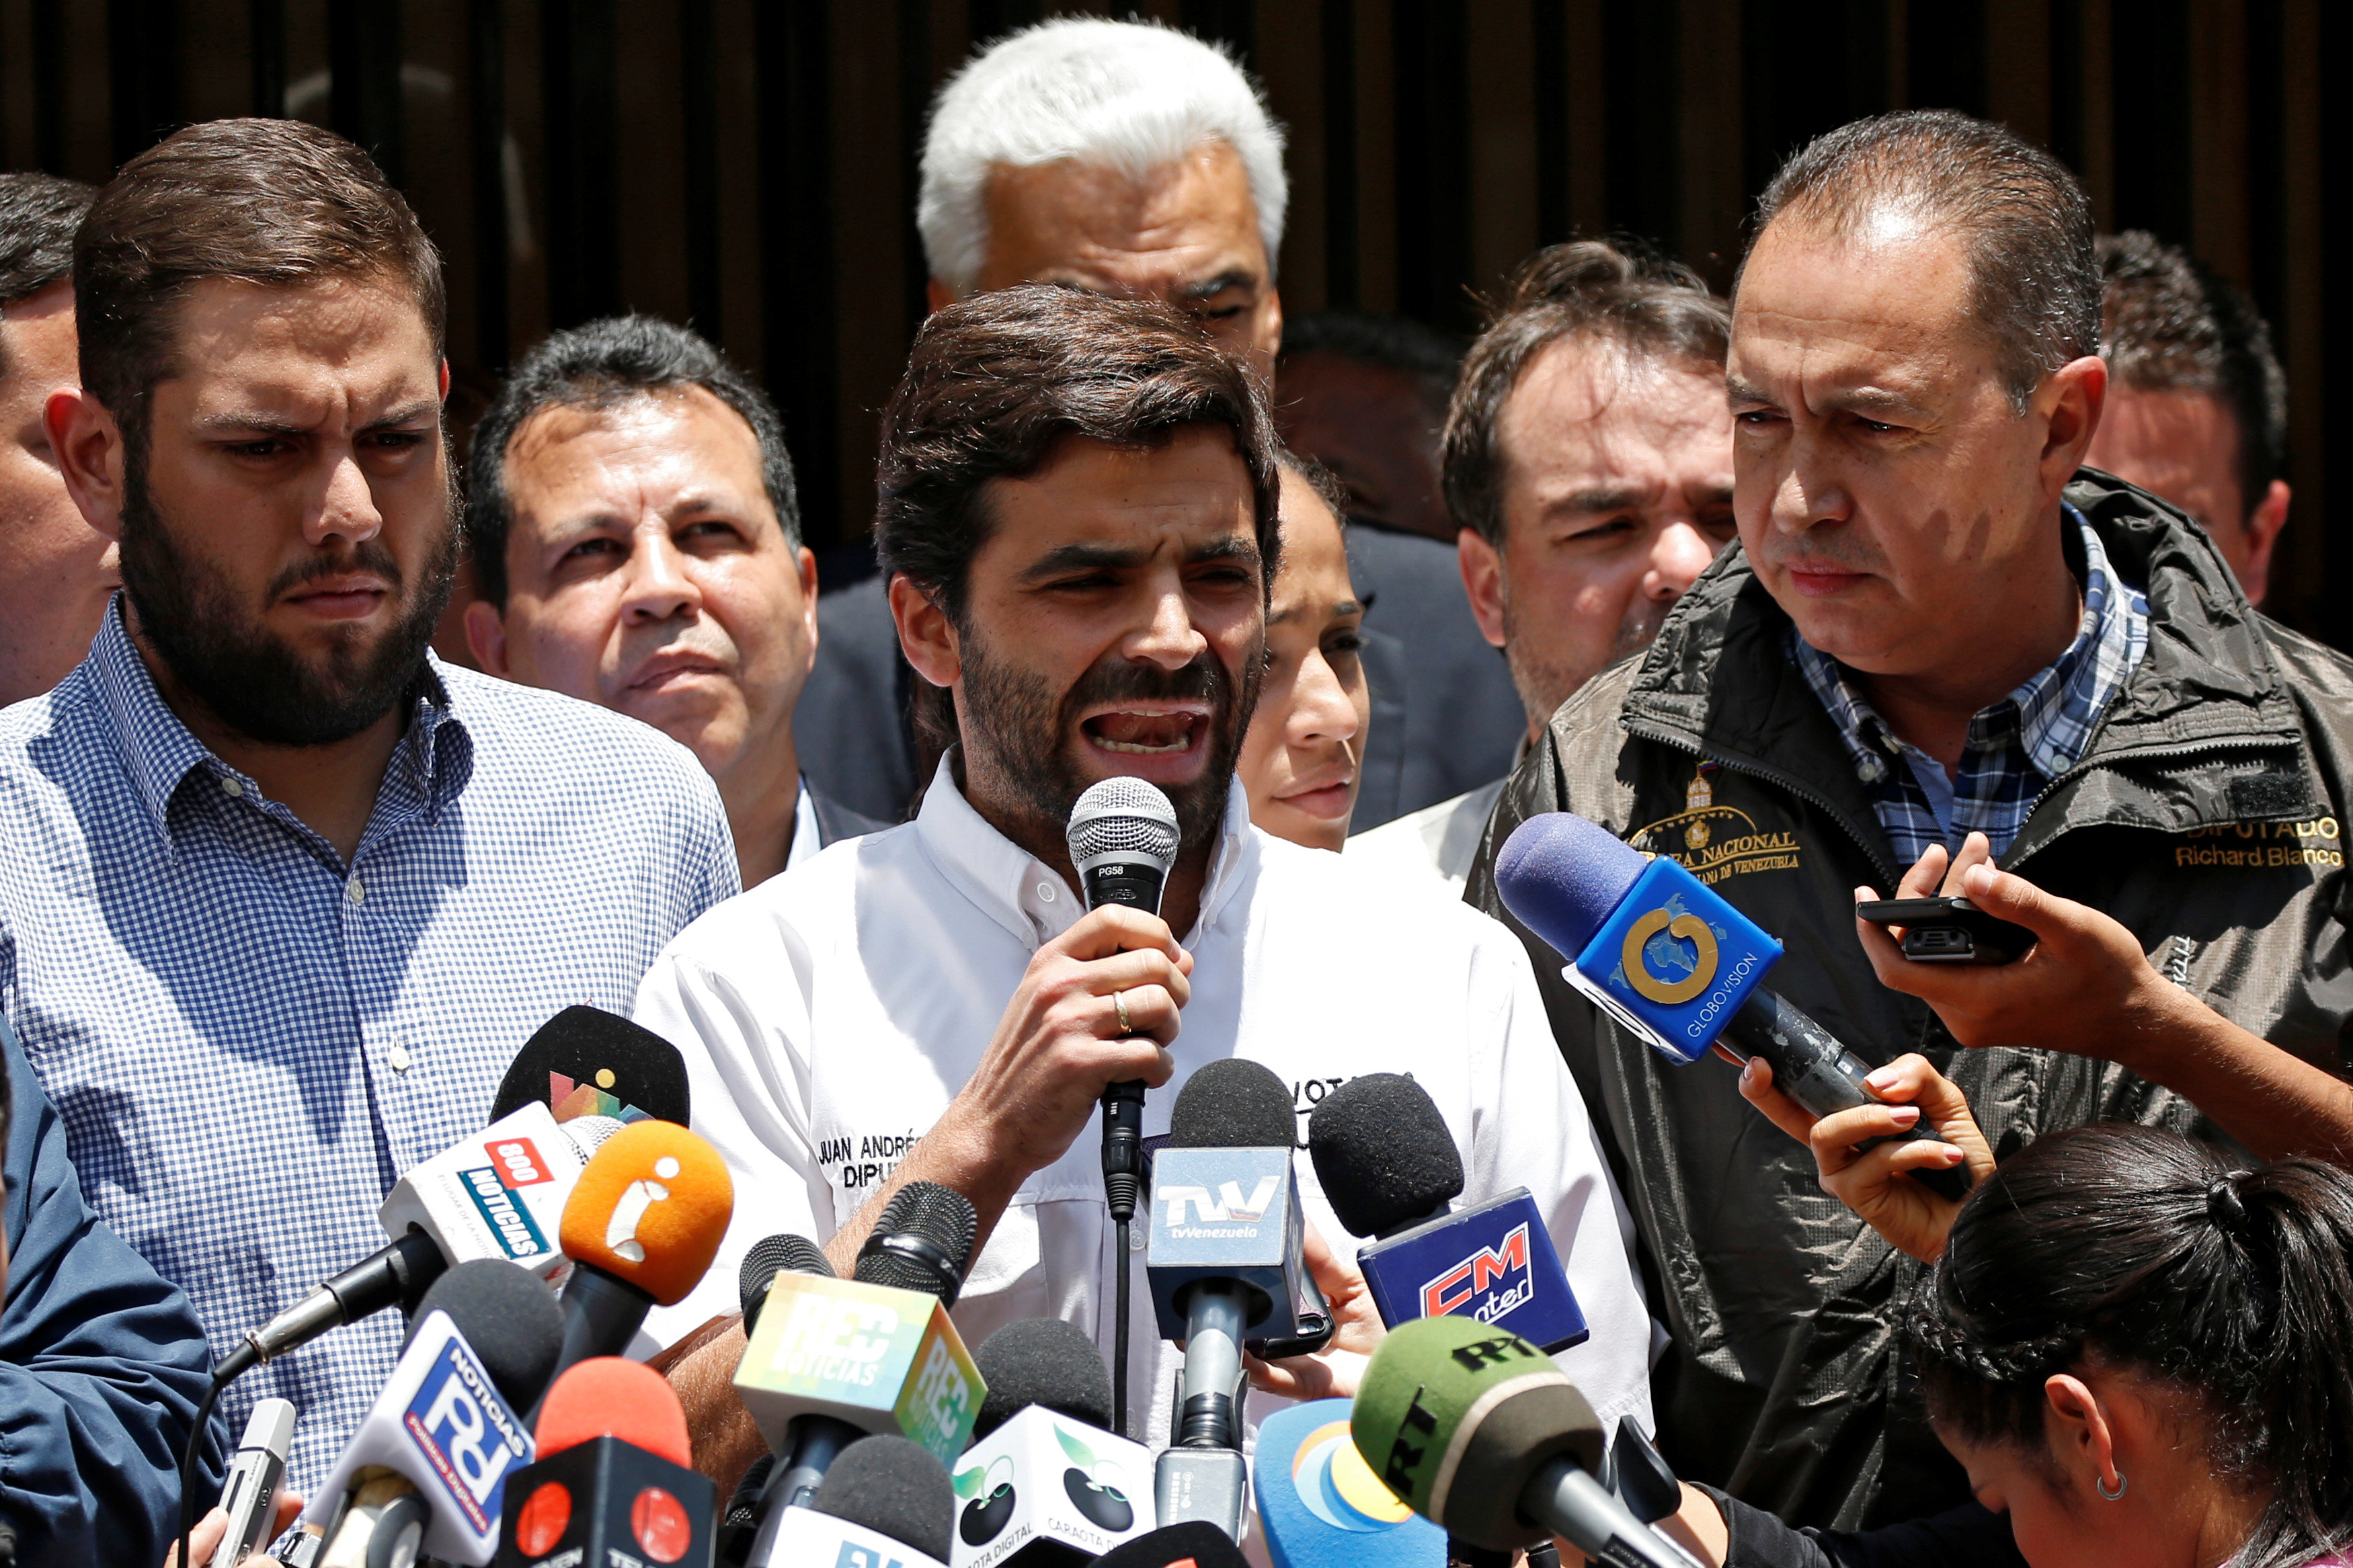 Juan Andres Mejia, deputy of Venezuelan coalition of opposition parties (MUD), talks to the media outside the offices of the opposition party Justice First (Primero Justicia), next to his fellow deputies Juan Requesens (L) and Richard Blanco (R) in Caracas, Venezuela on March 31, 2017. (REUTERS/Carlos Garcia Rawlins)